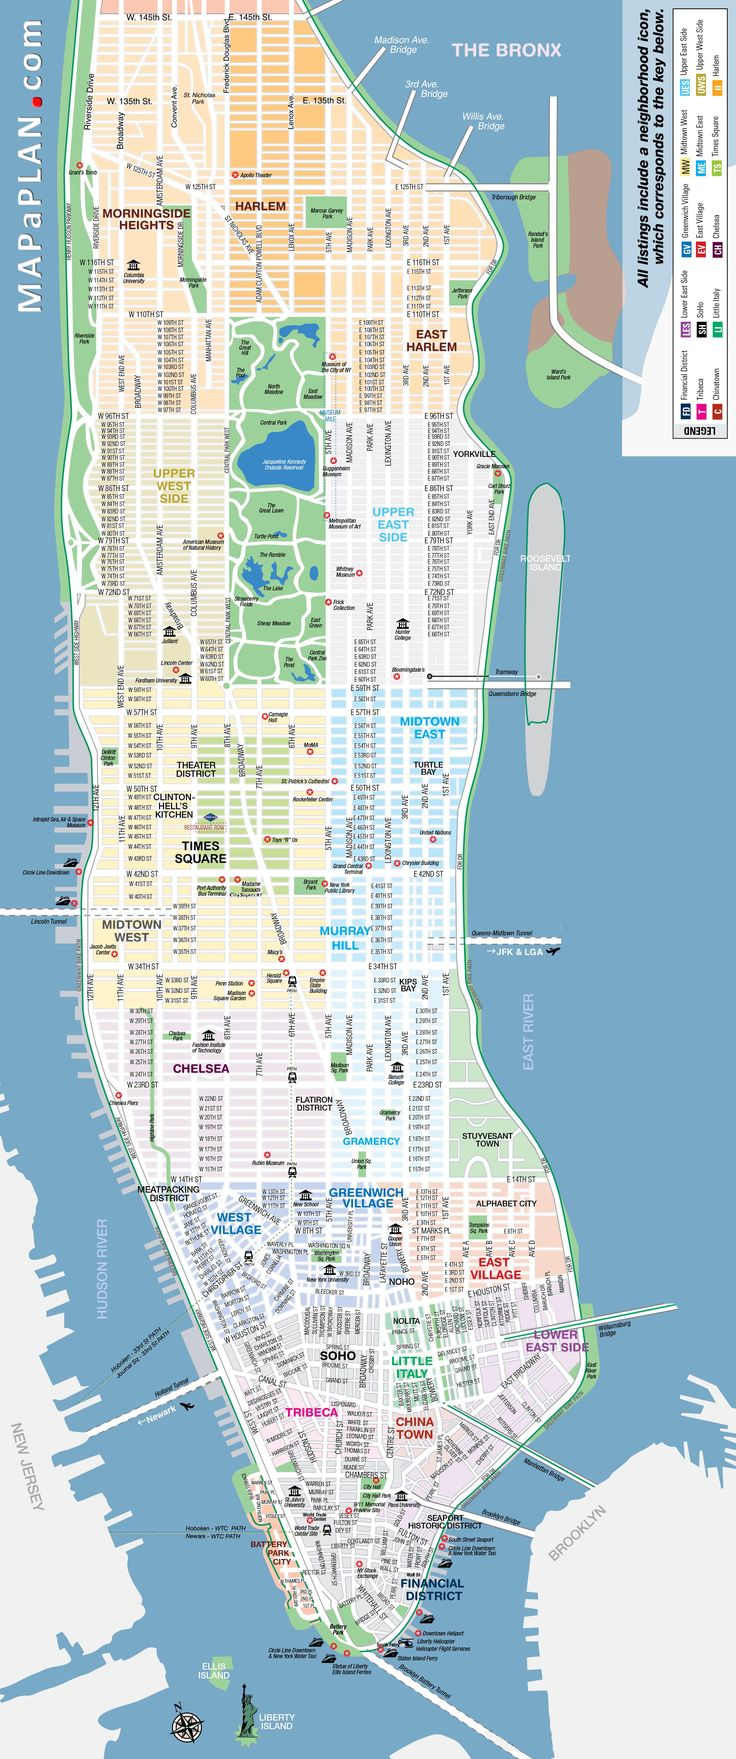 manhattan-streets-and-avenues-must-see-places-new-york-top-tourist ...